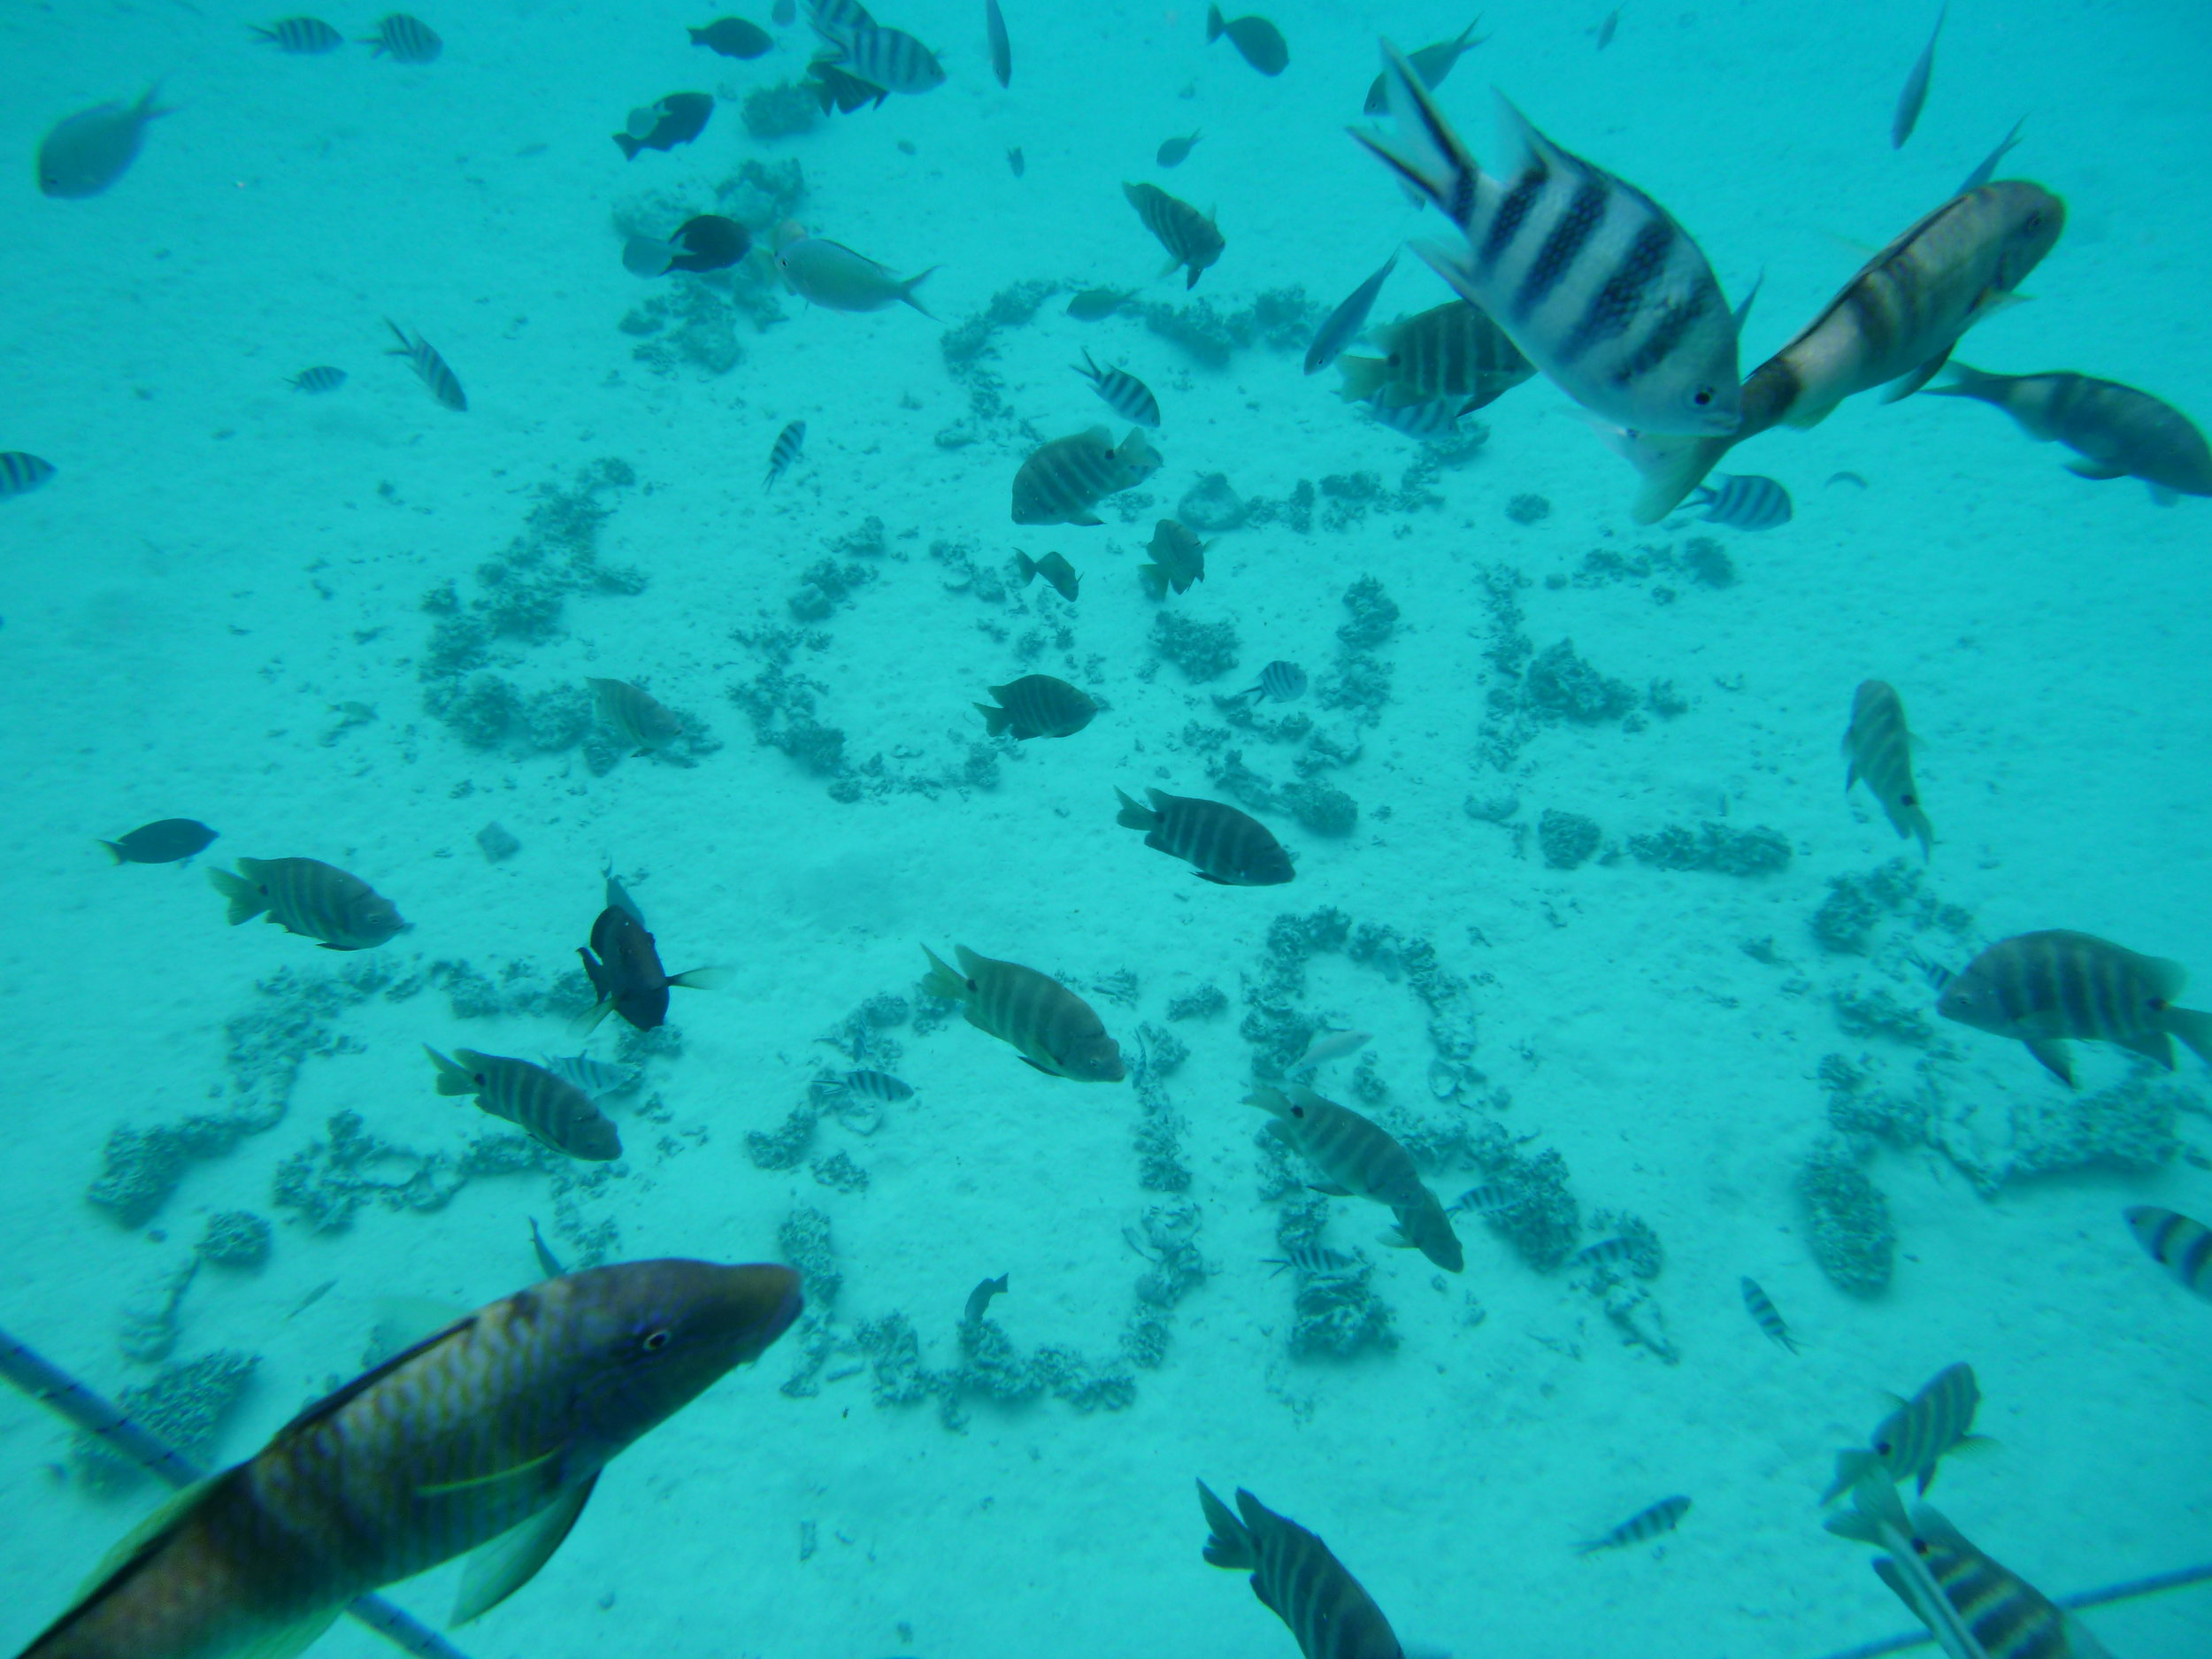 Fish graffiti on the sea bed